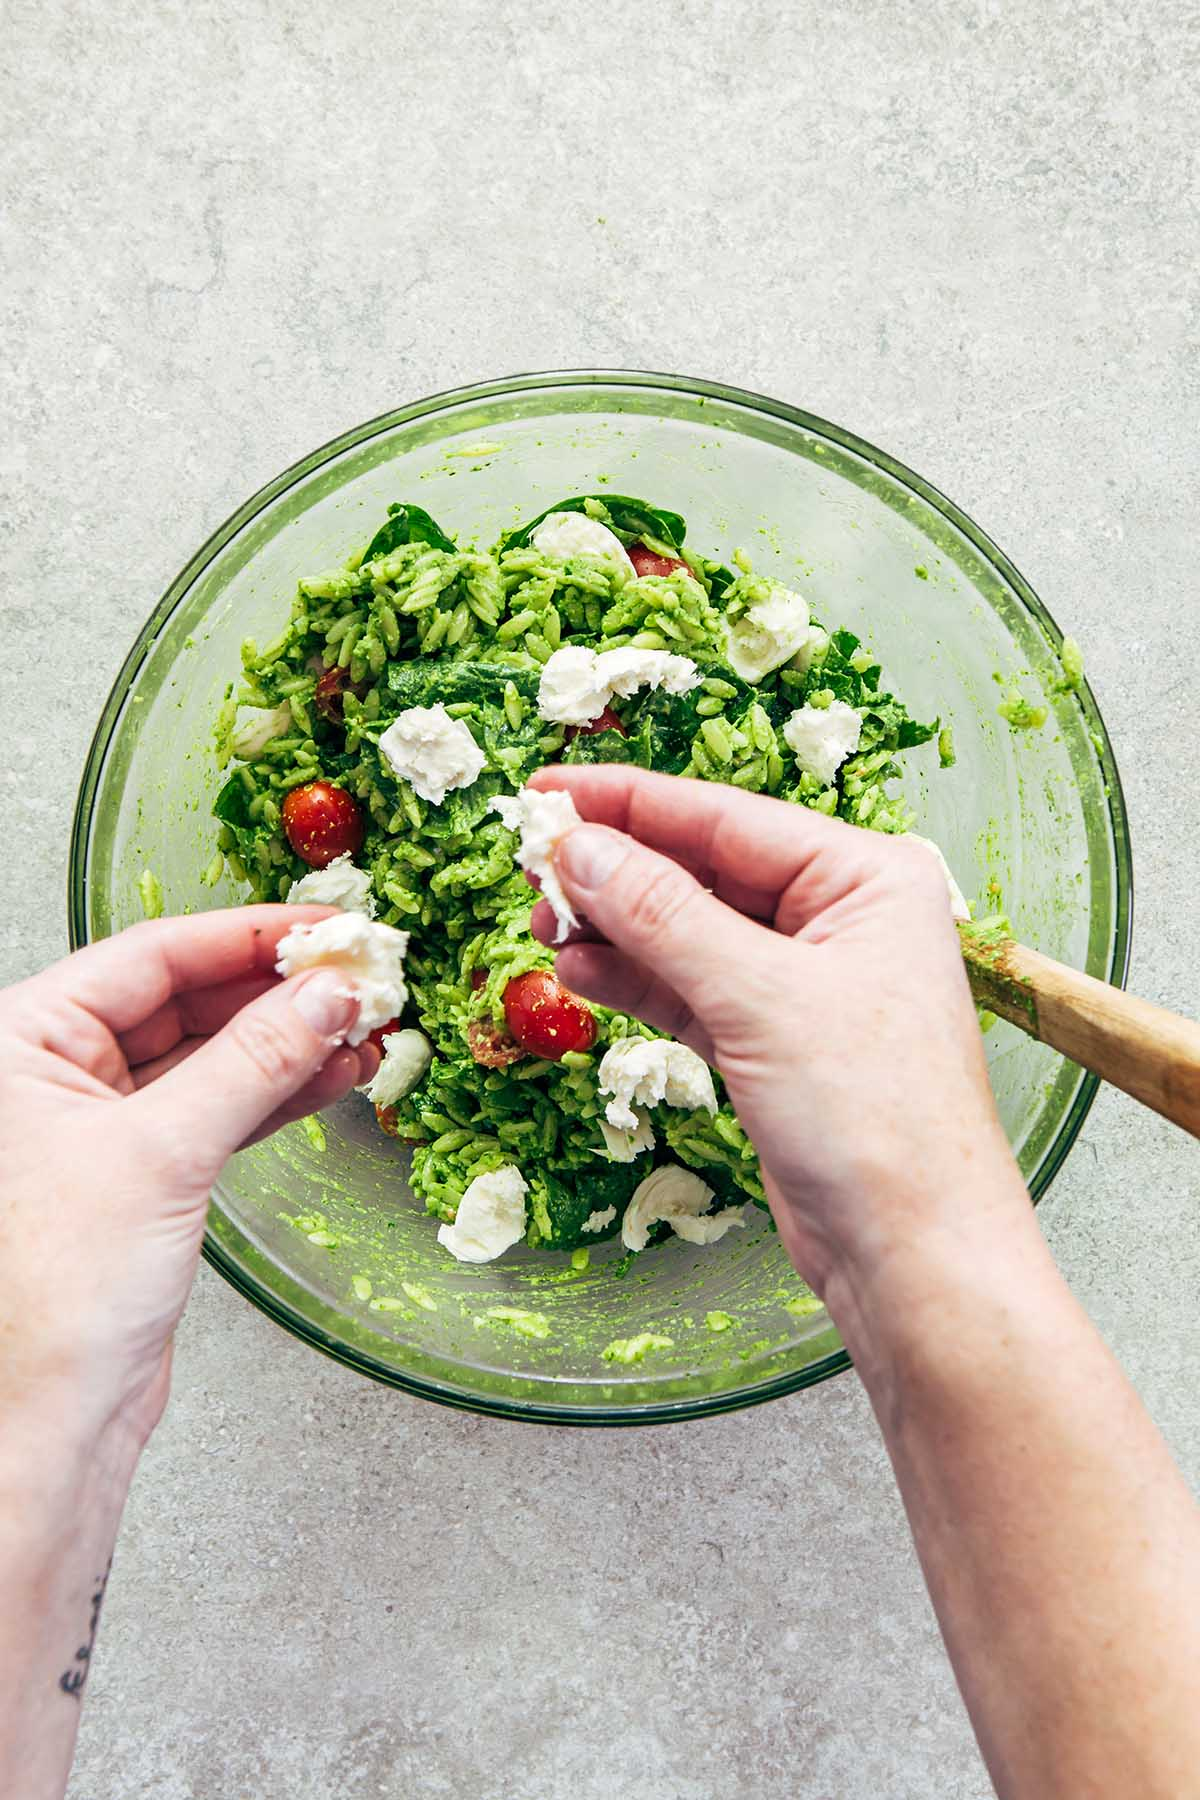 Hands tearing a ball of fresh mozzarella and adding the pieces to a bowl of pesto orzo salad.